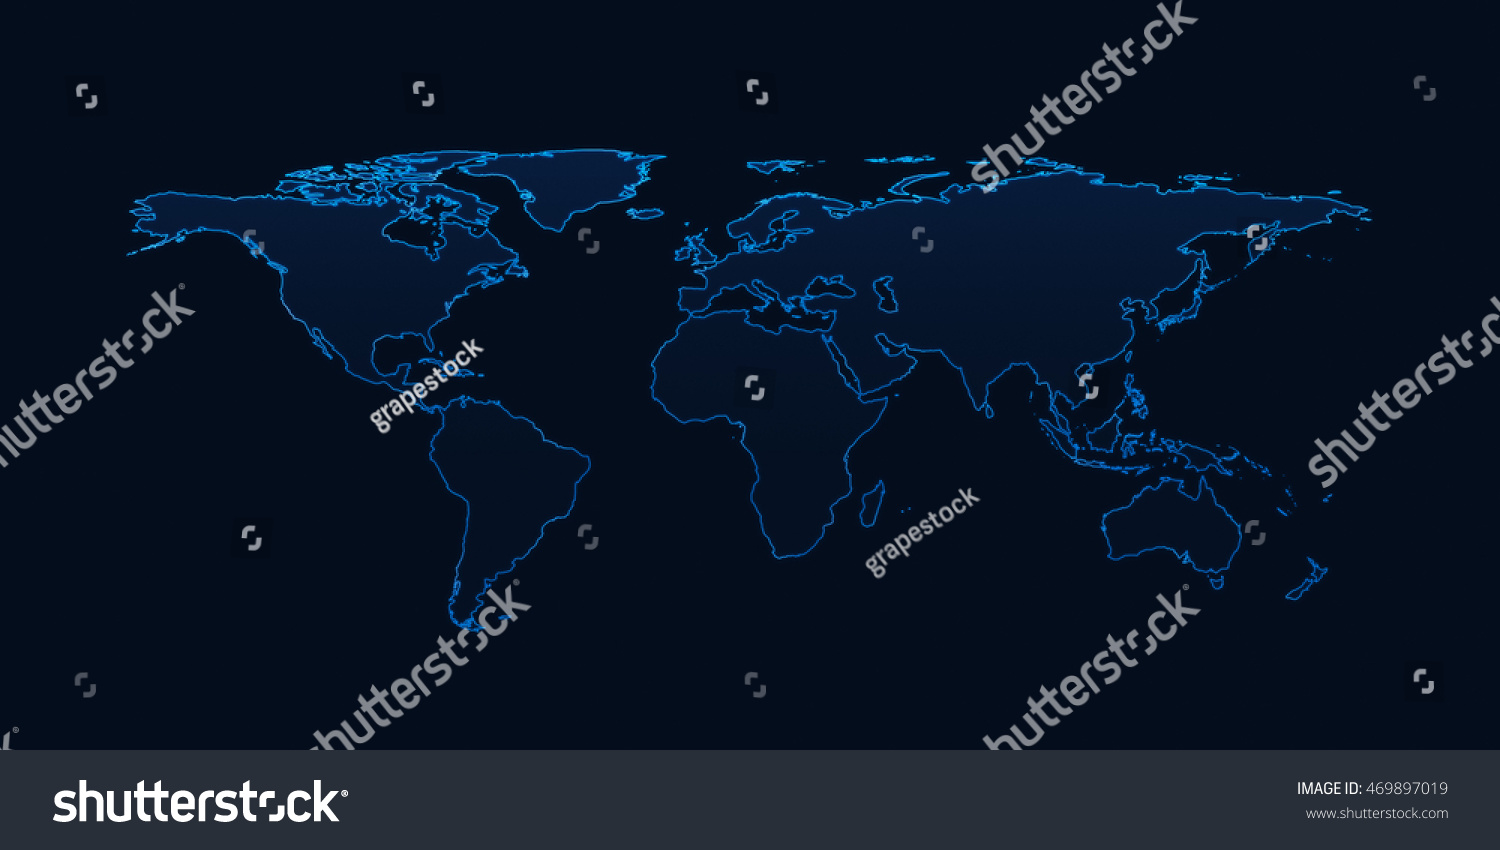 Light blue world map on dark stock illustration 469897019 light blue world map on dark blue background elements of this image furnished by nasa sciox Image collections